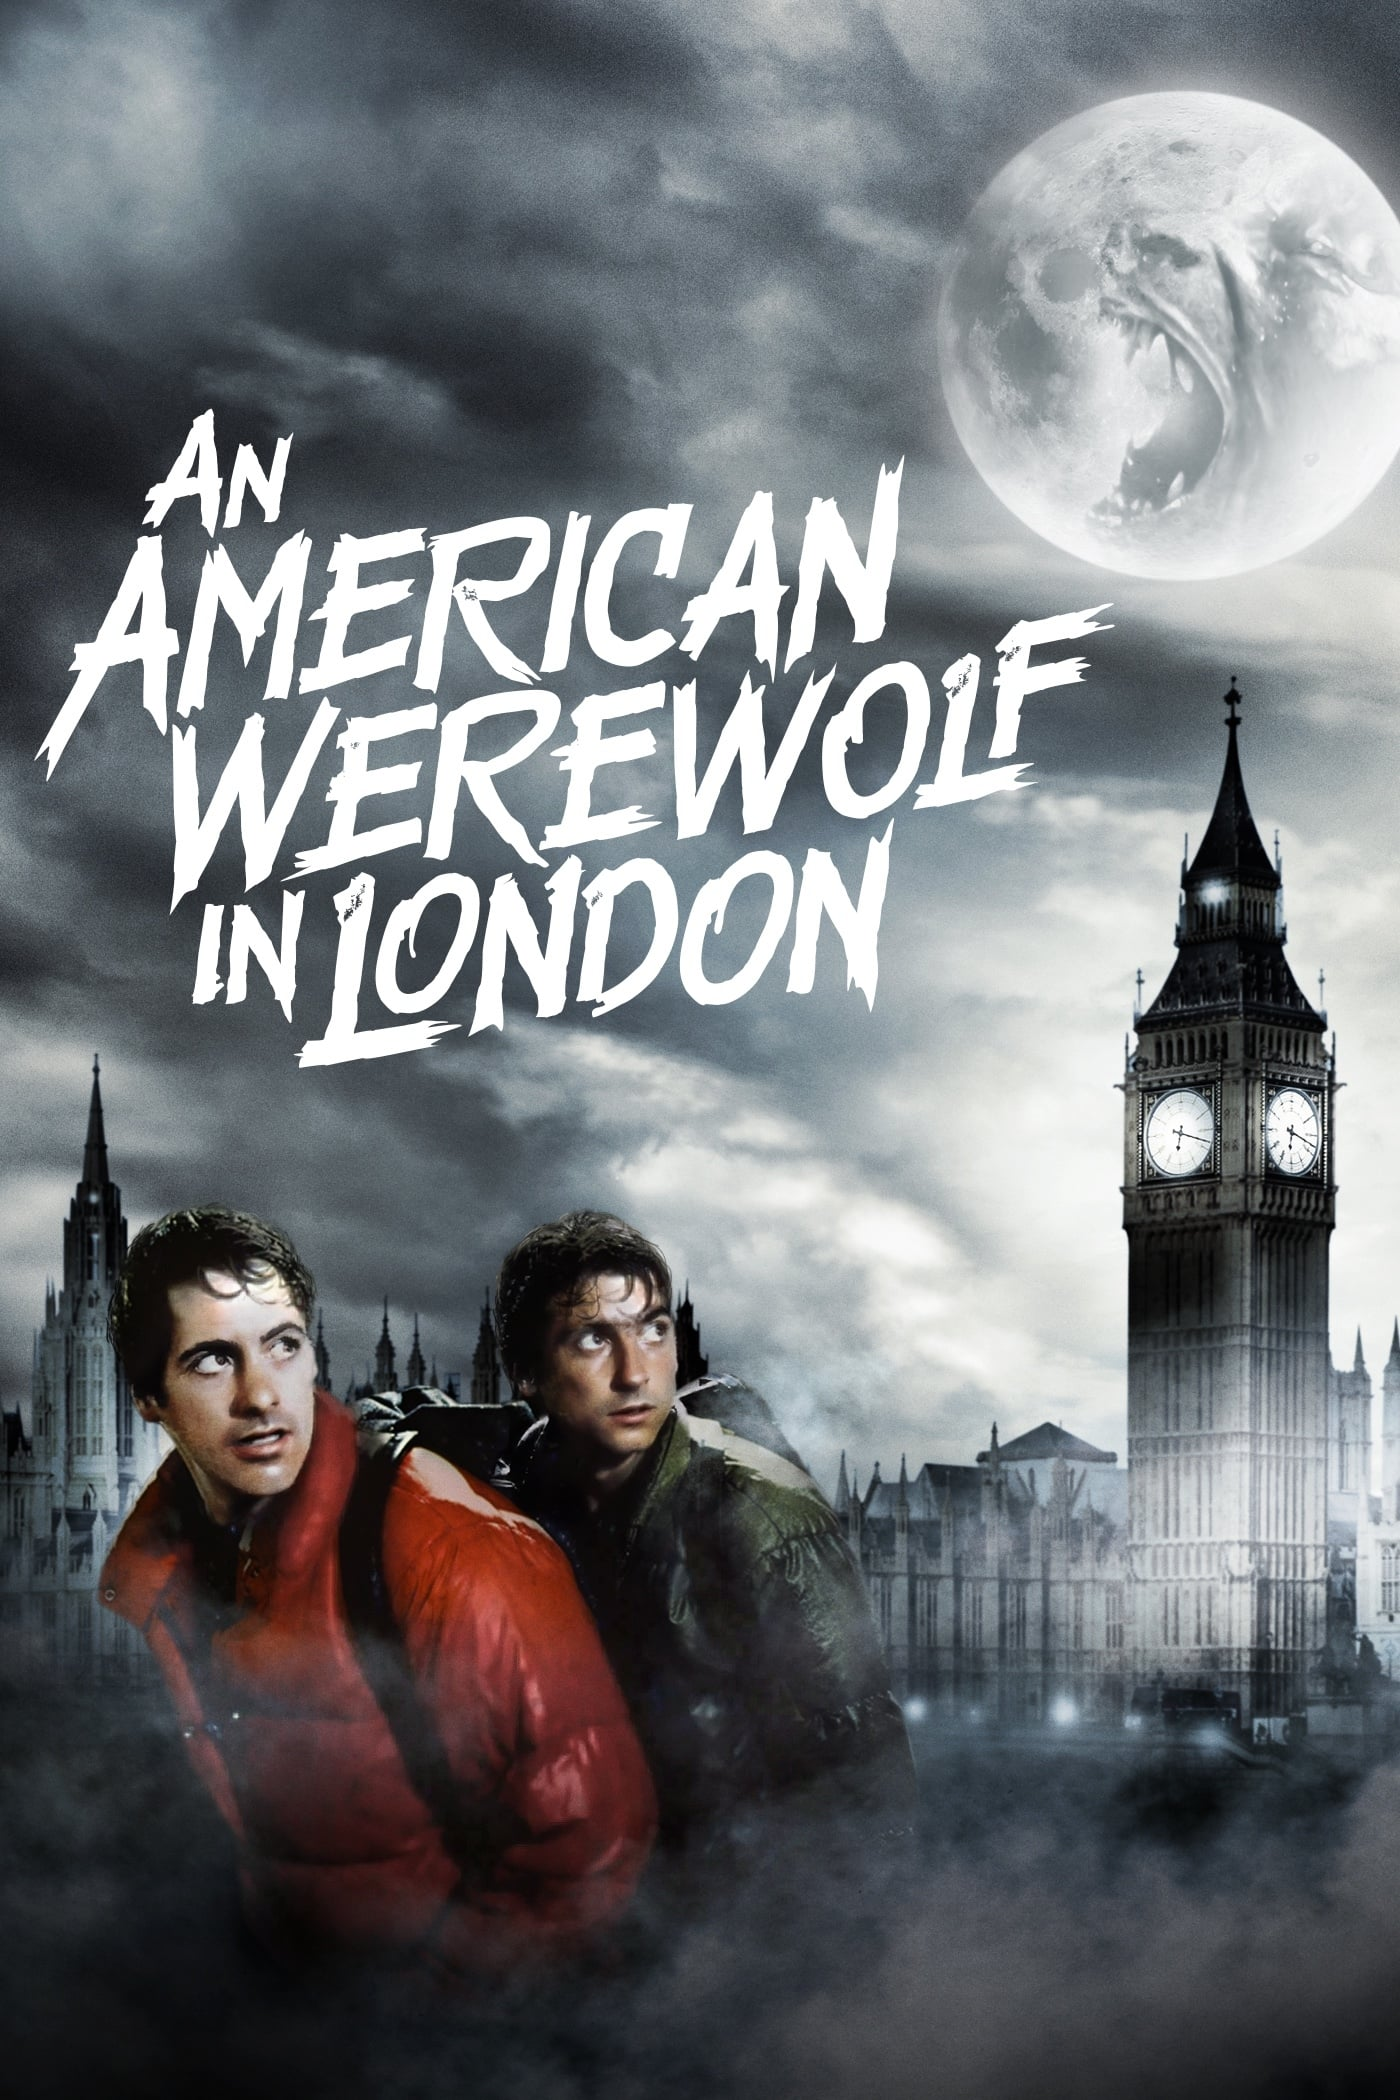 Theatrical poster for An American Werewolf in London (1981)